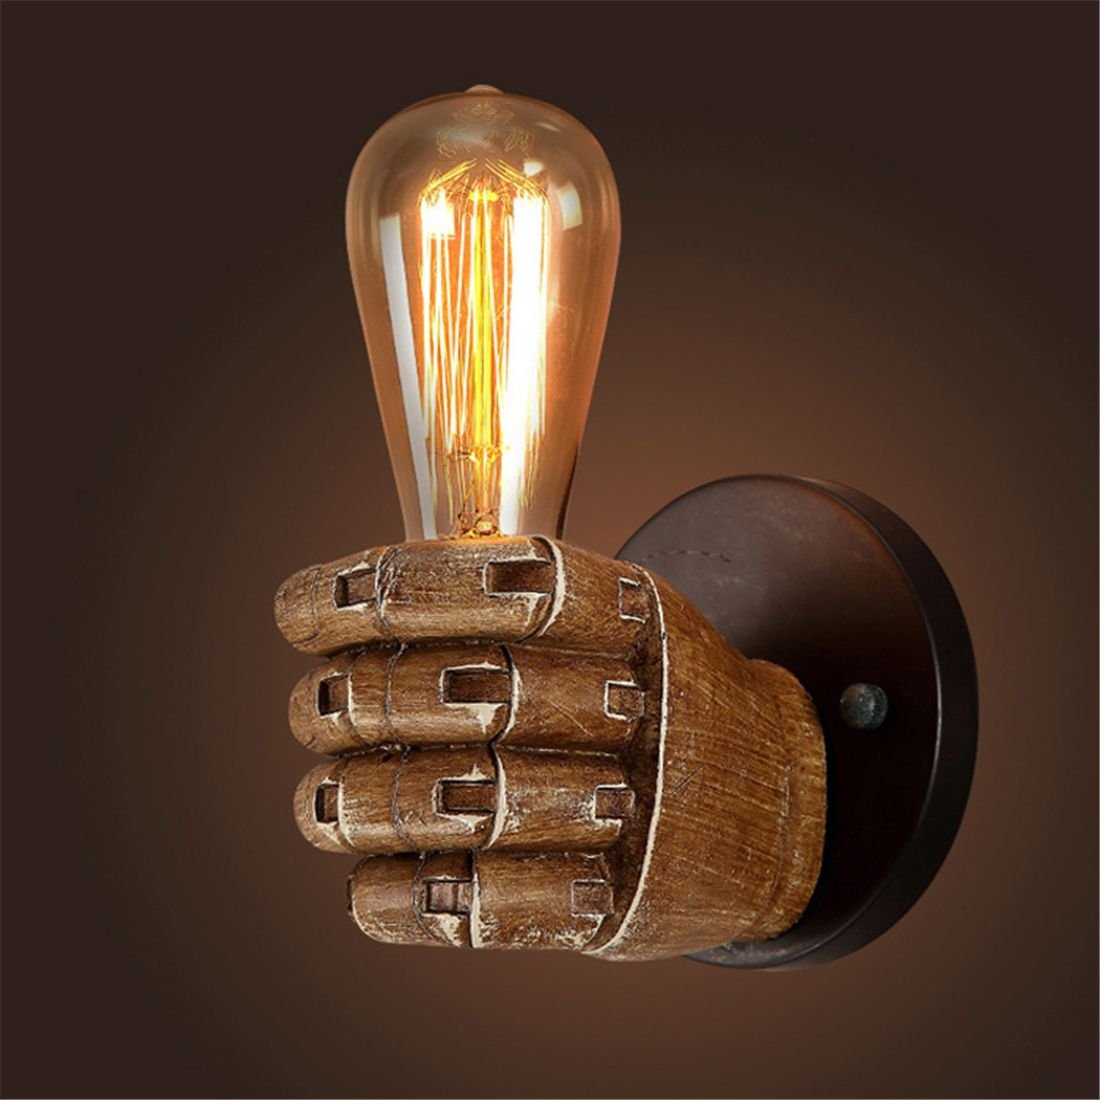 TOOGOO 1 Pair of Left and Right Hand Retro Creative fist Resin Wall lamp Loft Industrial Style lamp Sushi Restaurant Bar Restaurant Cafe Decorative Antique Wall lamp